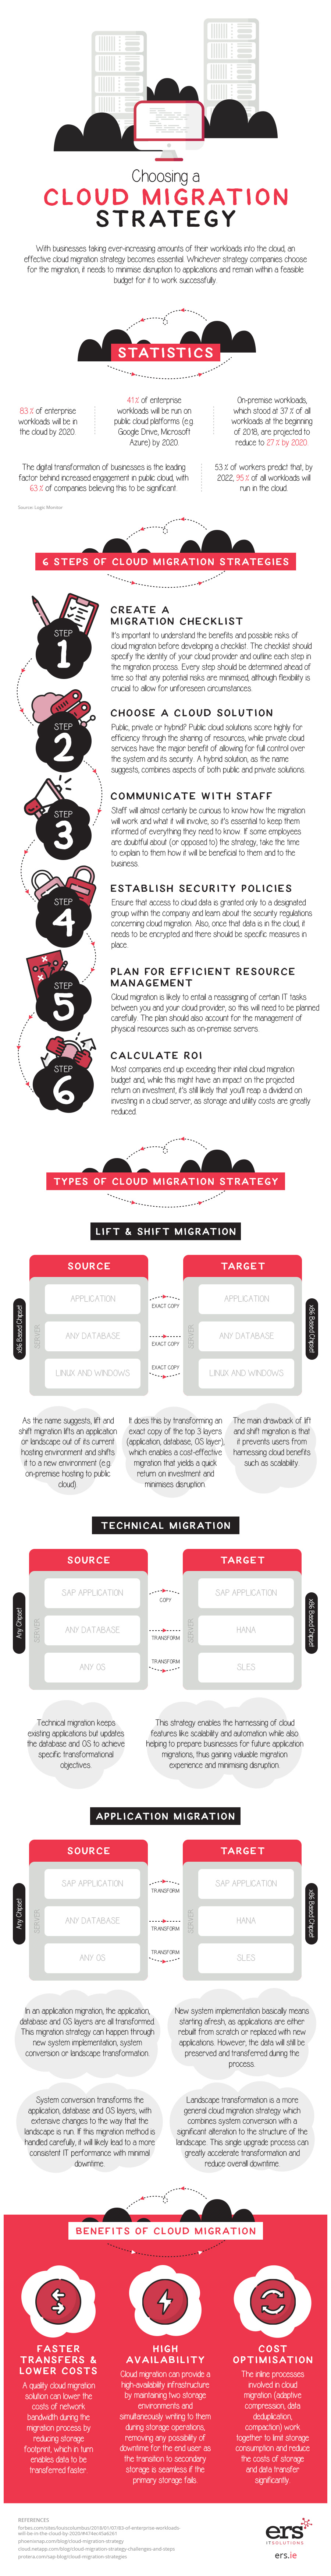 choosing-a-cloud-migration-strategy